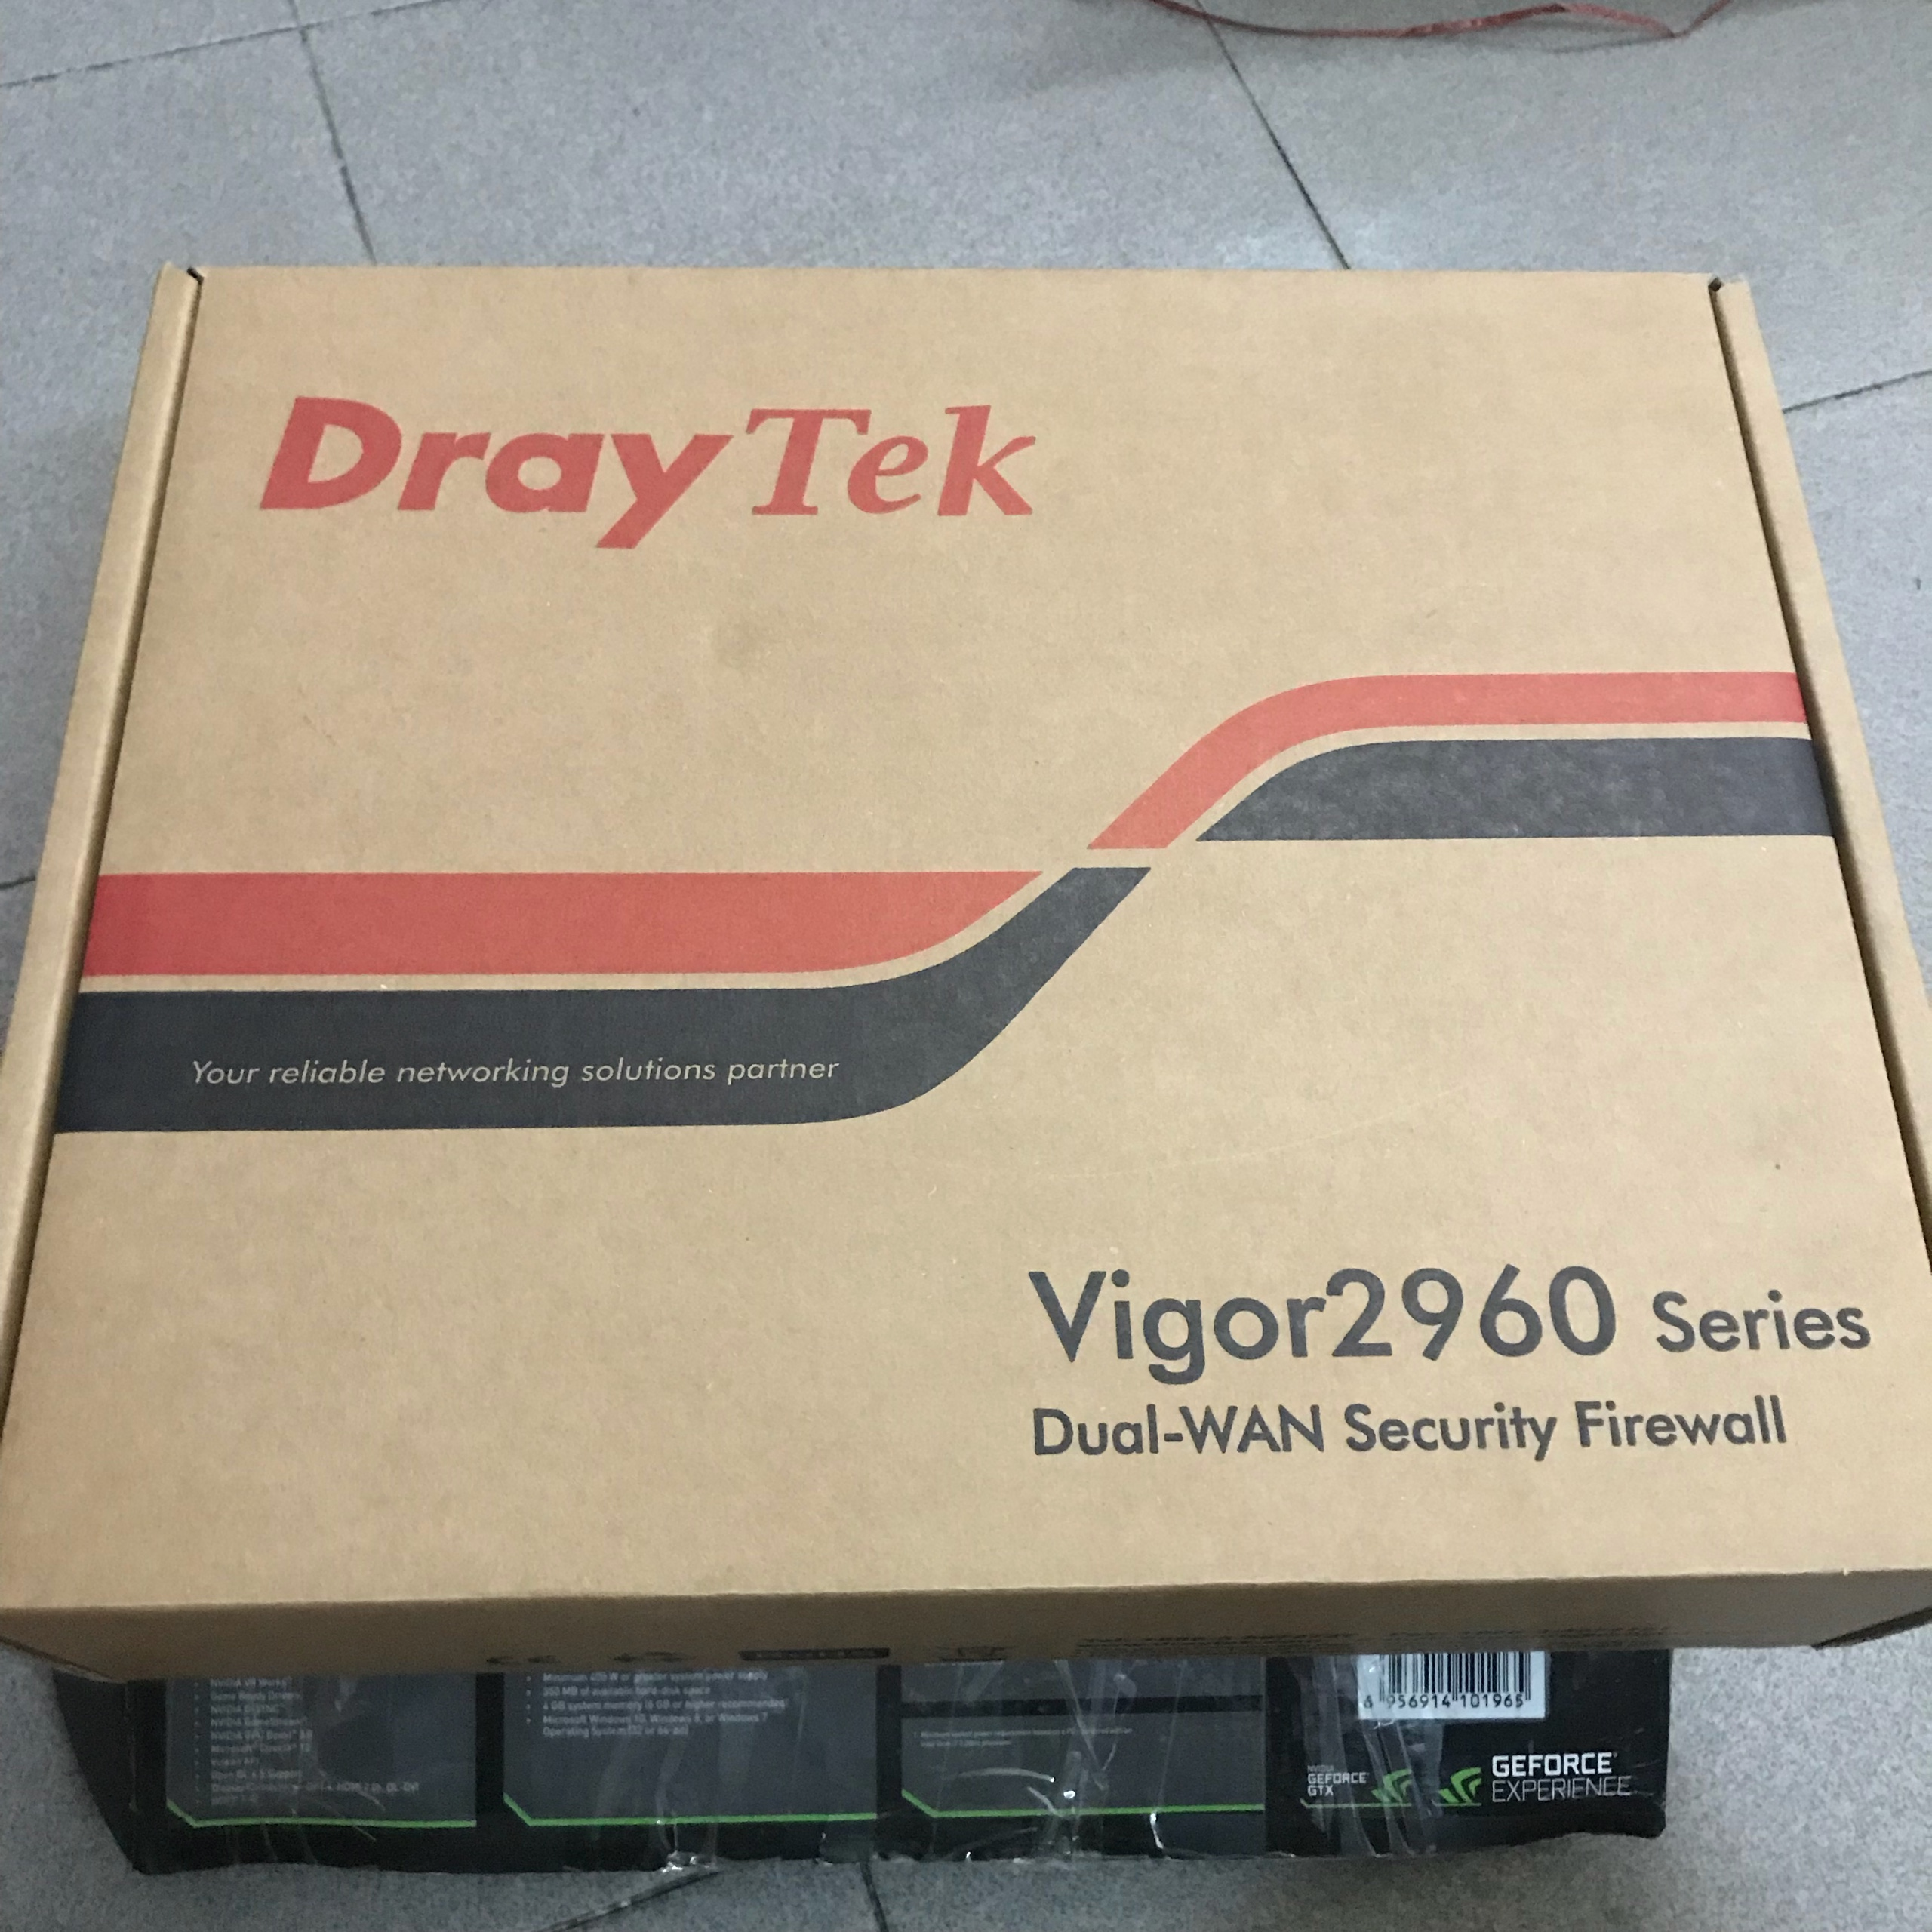 Draytek vigor 2960 new